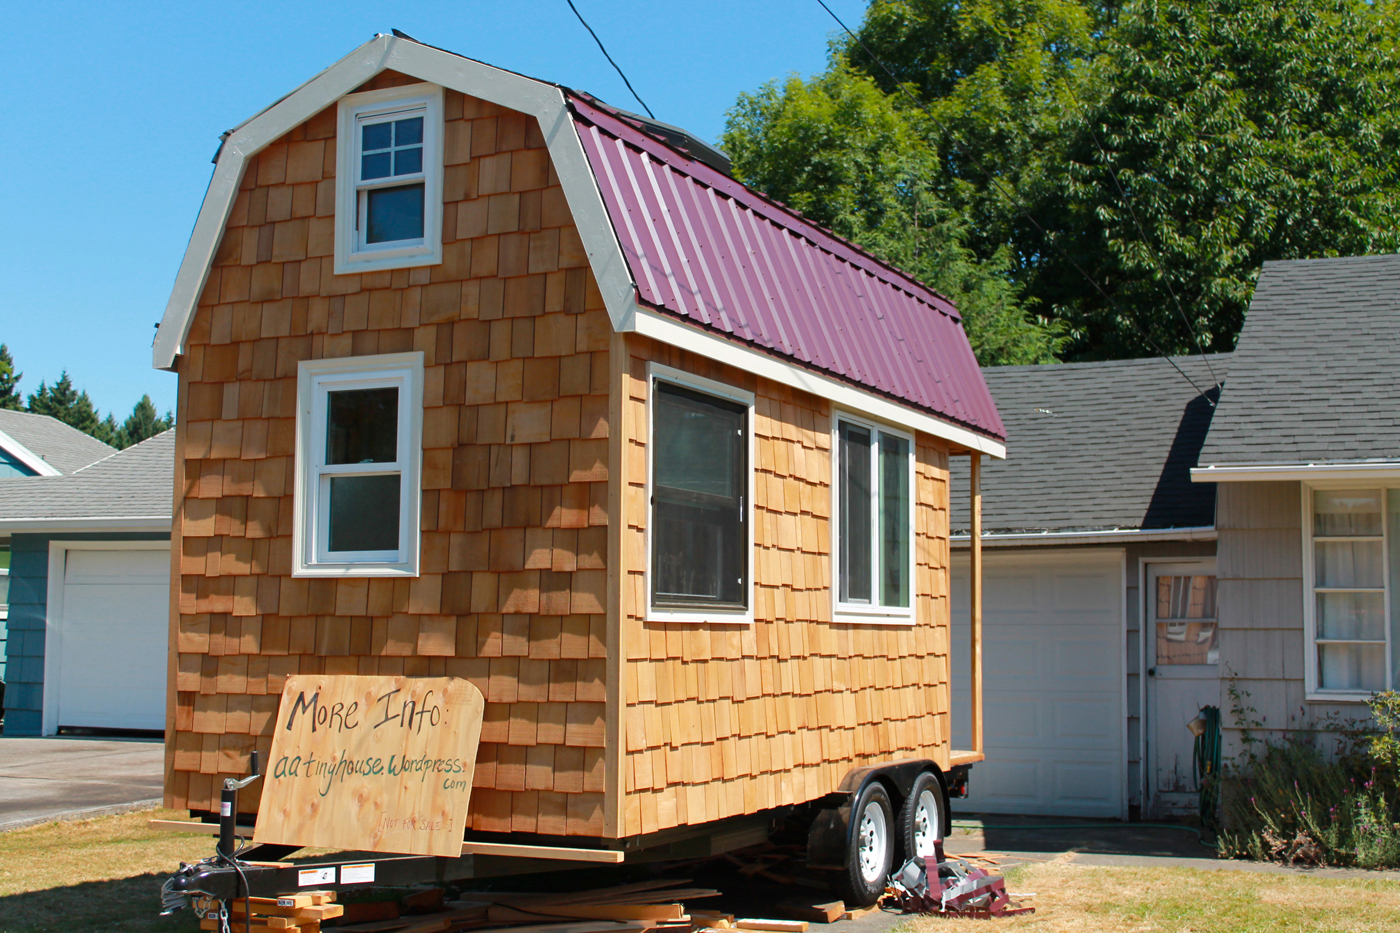 Tiny house on wheels for sale on craigslist for Little house